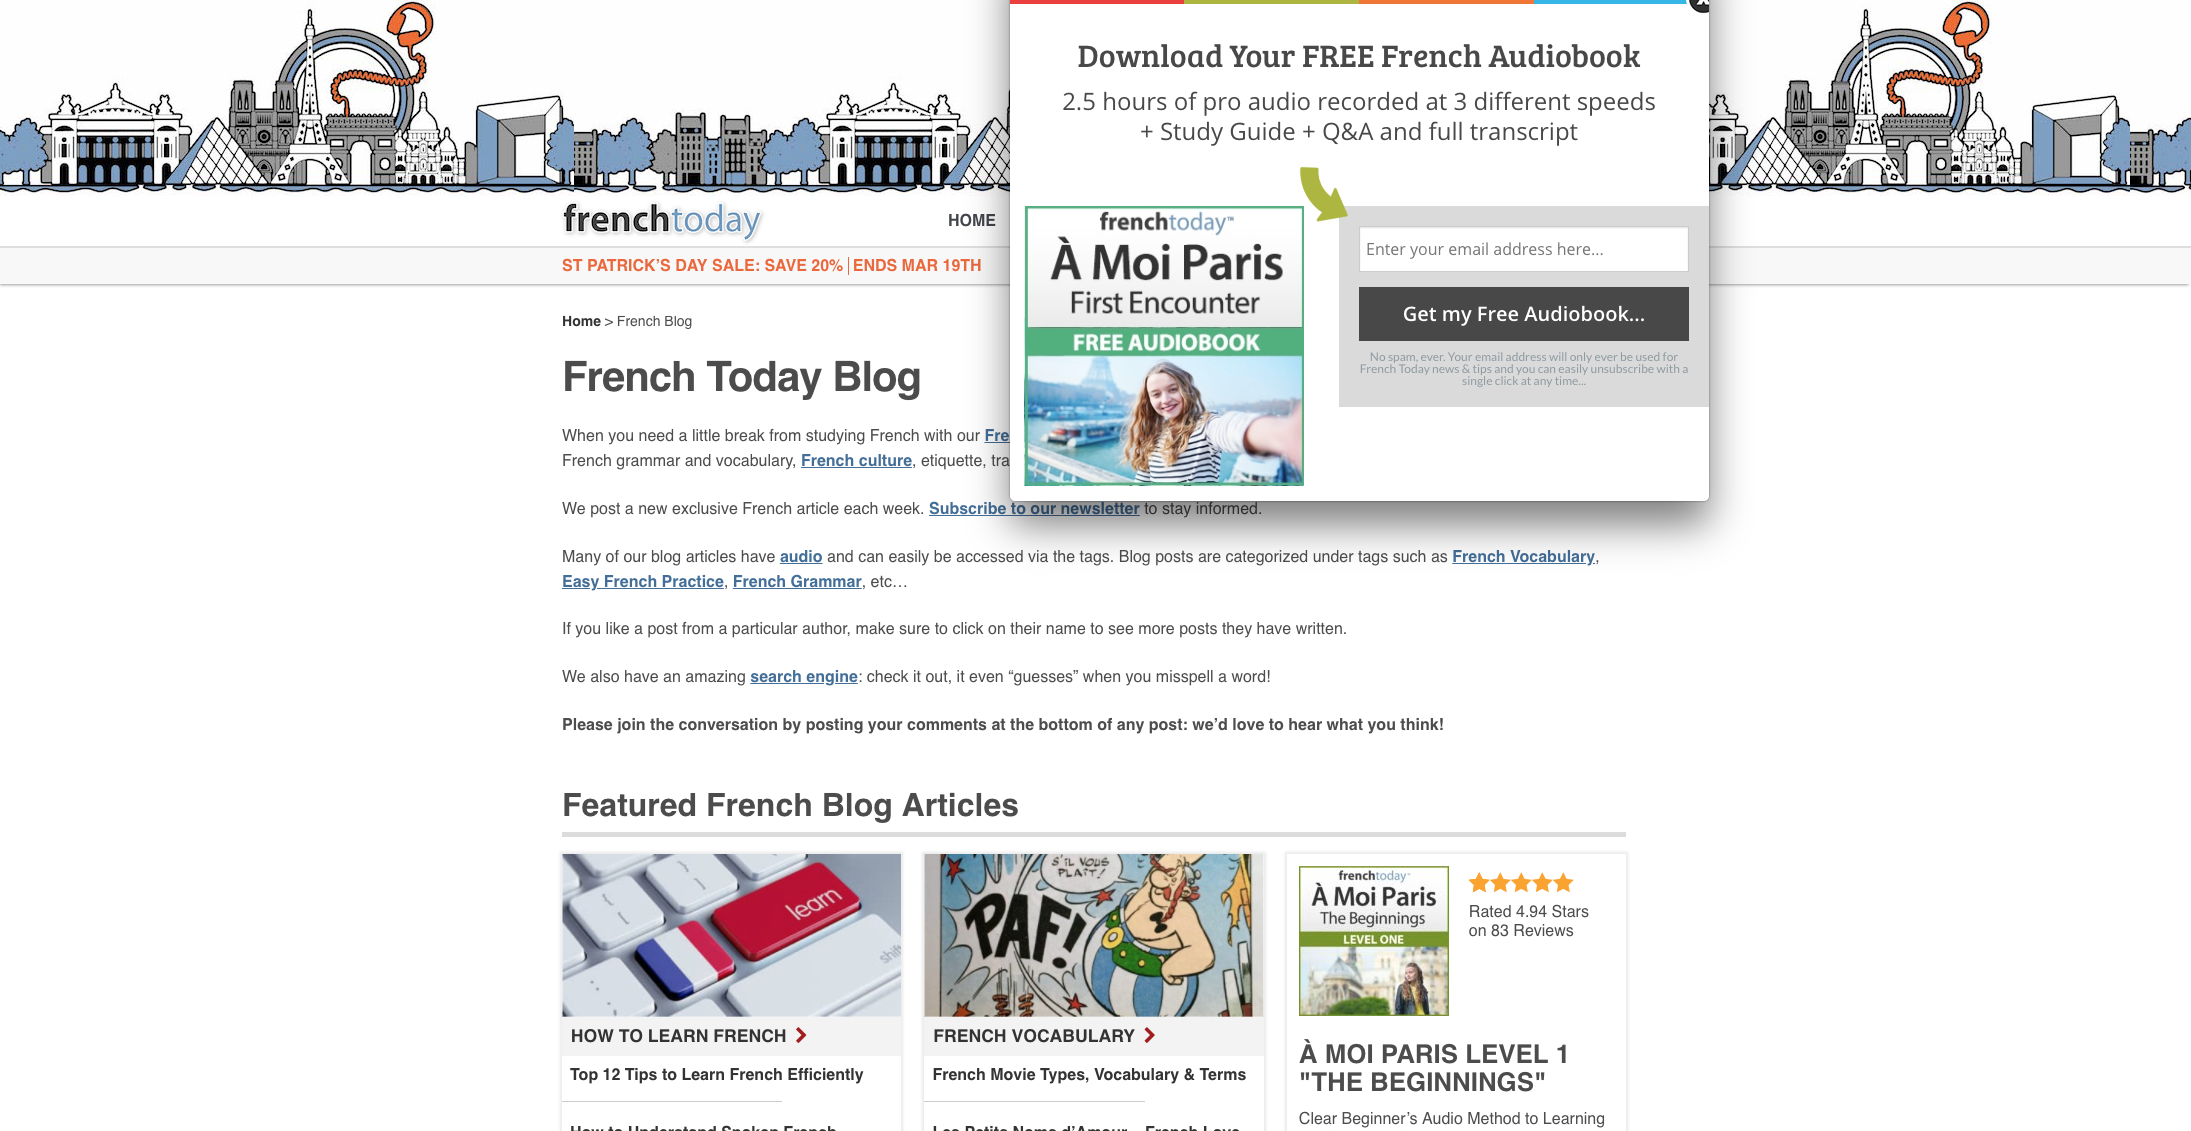 French Today Blog